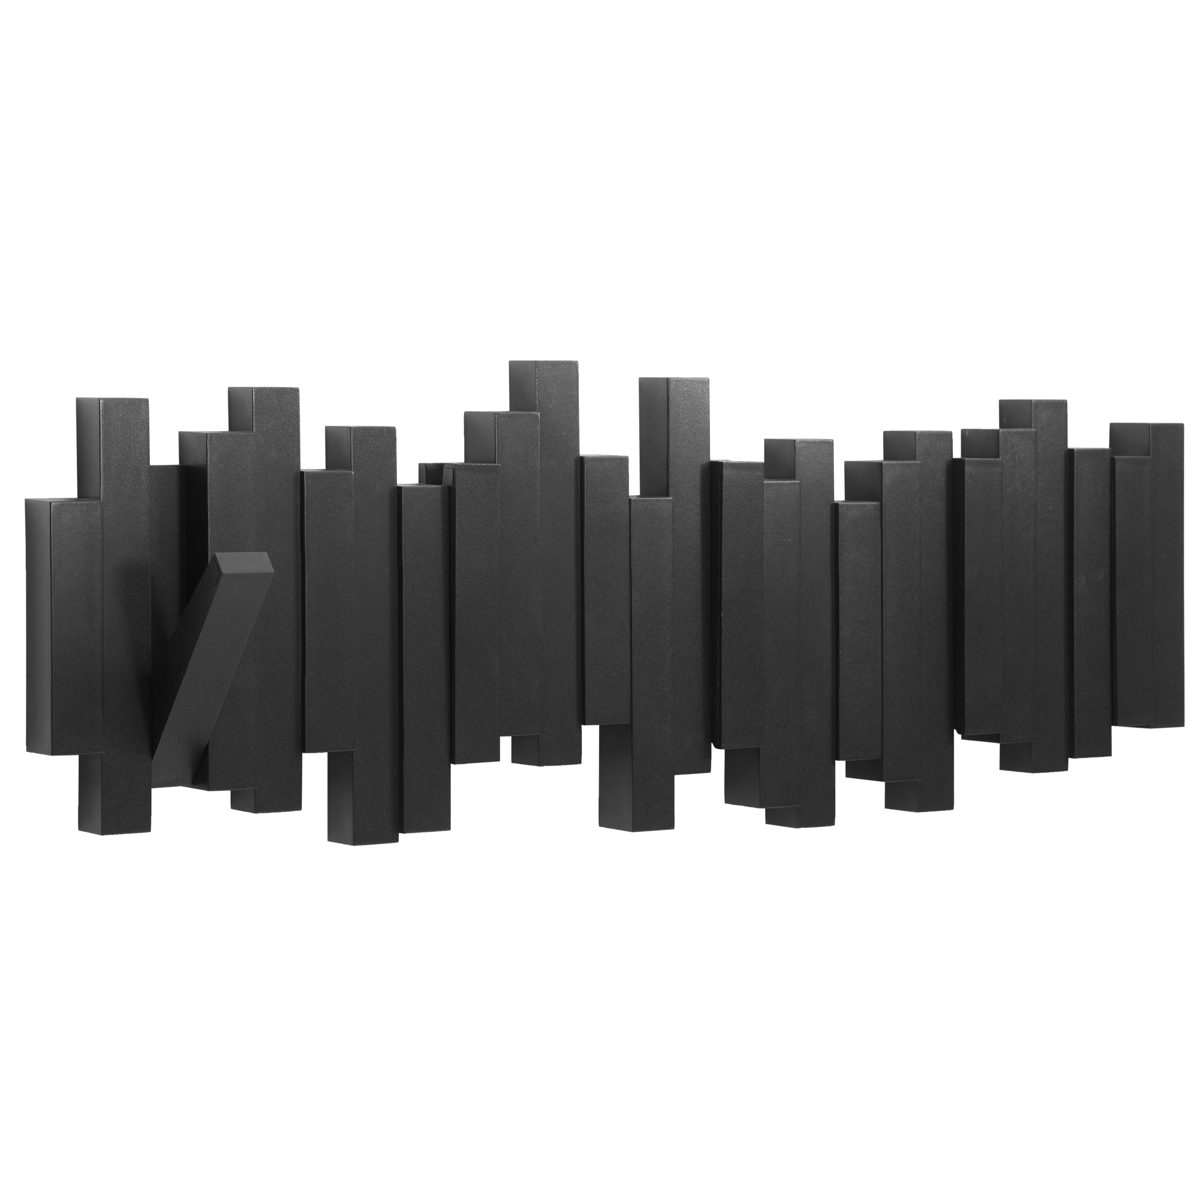 Umbra Sticks Multi Hook Black 48.3 x 18.4 x 2.5 cm